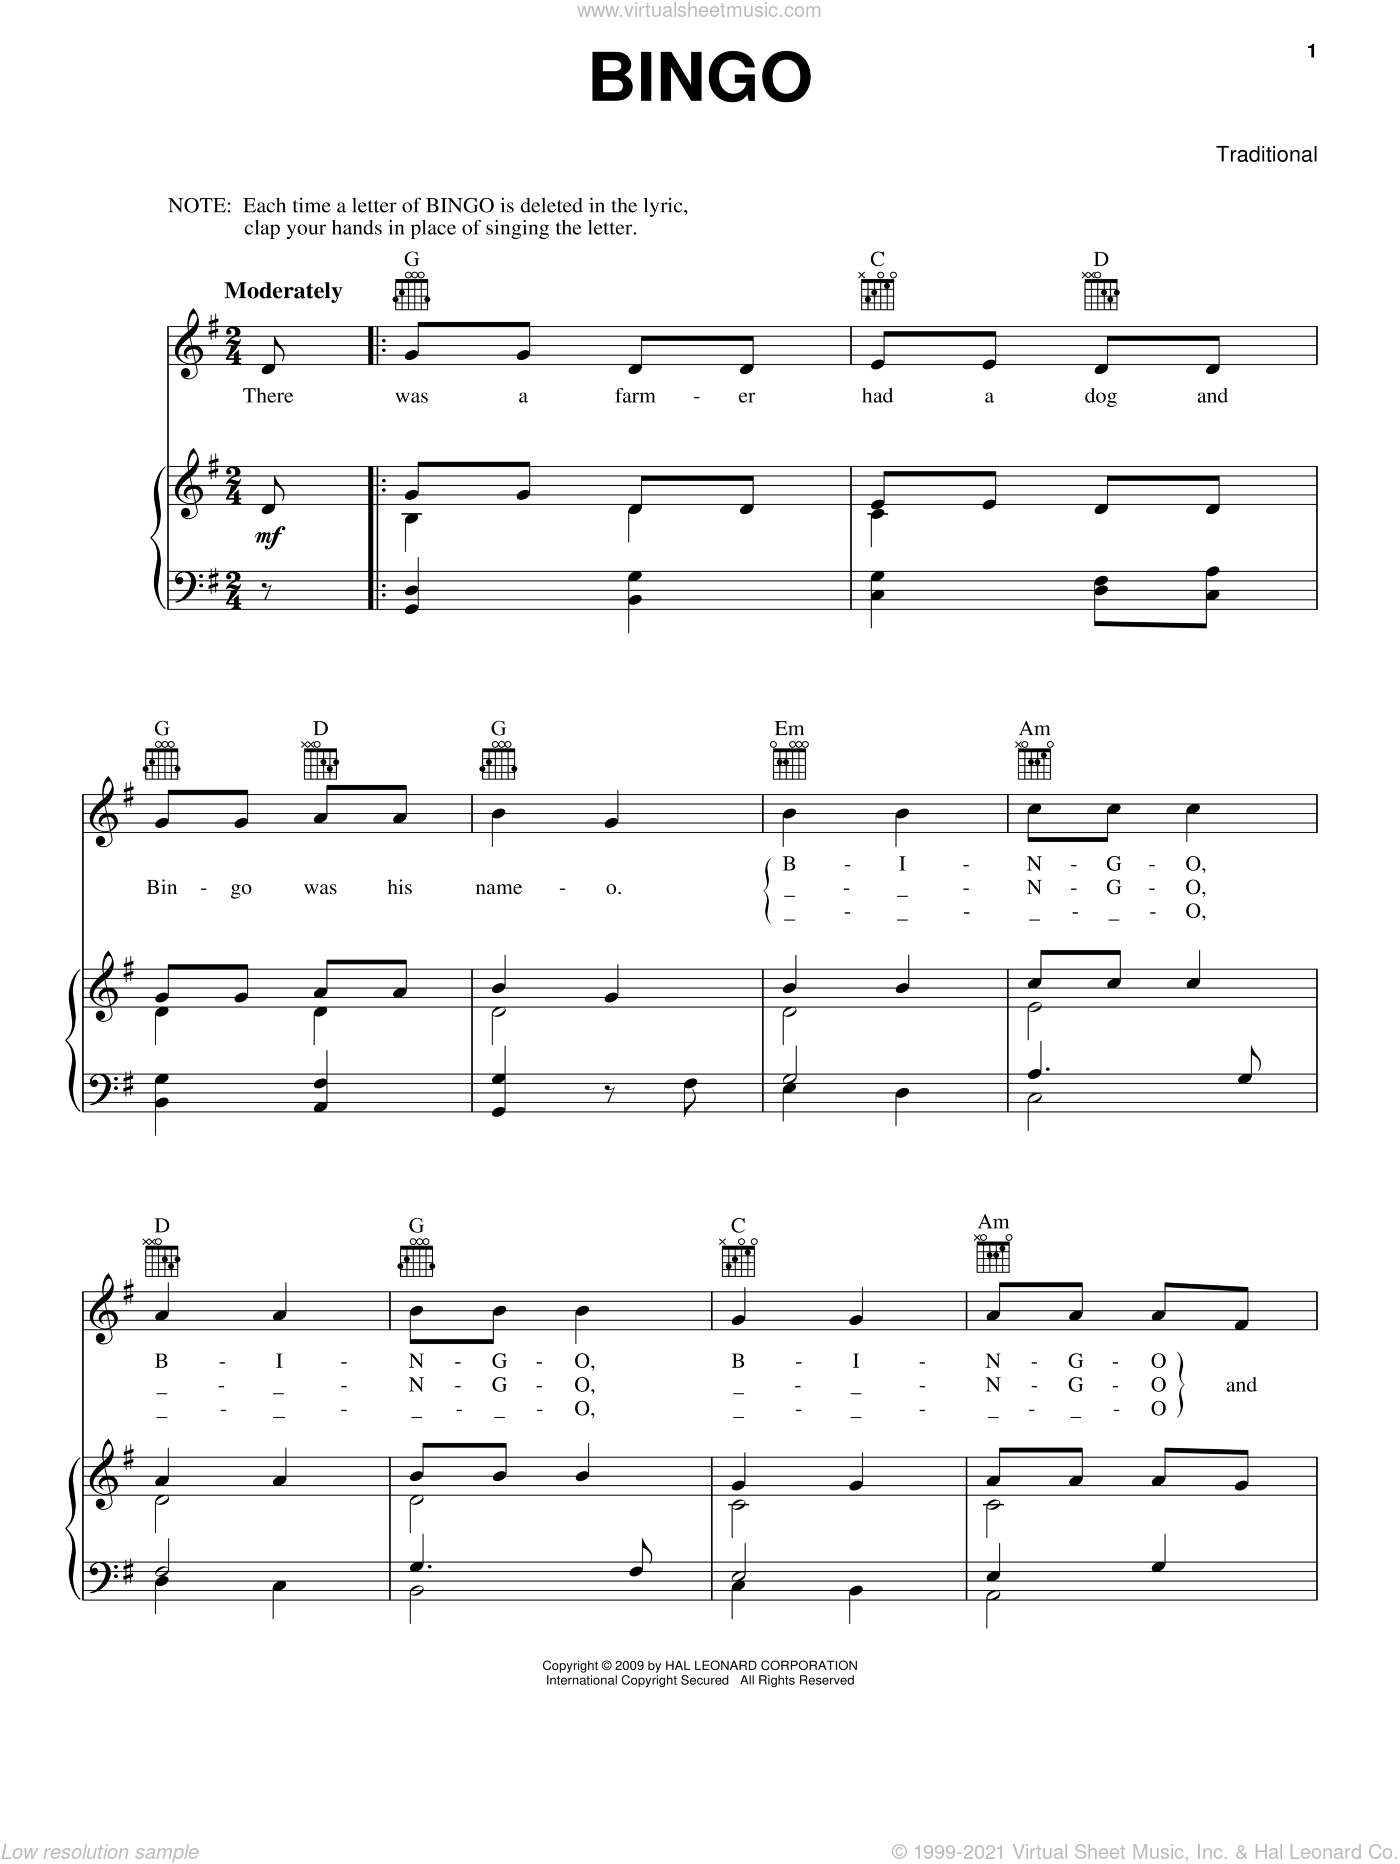 Bingo sheet music for voice, piano or guitar